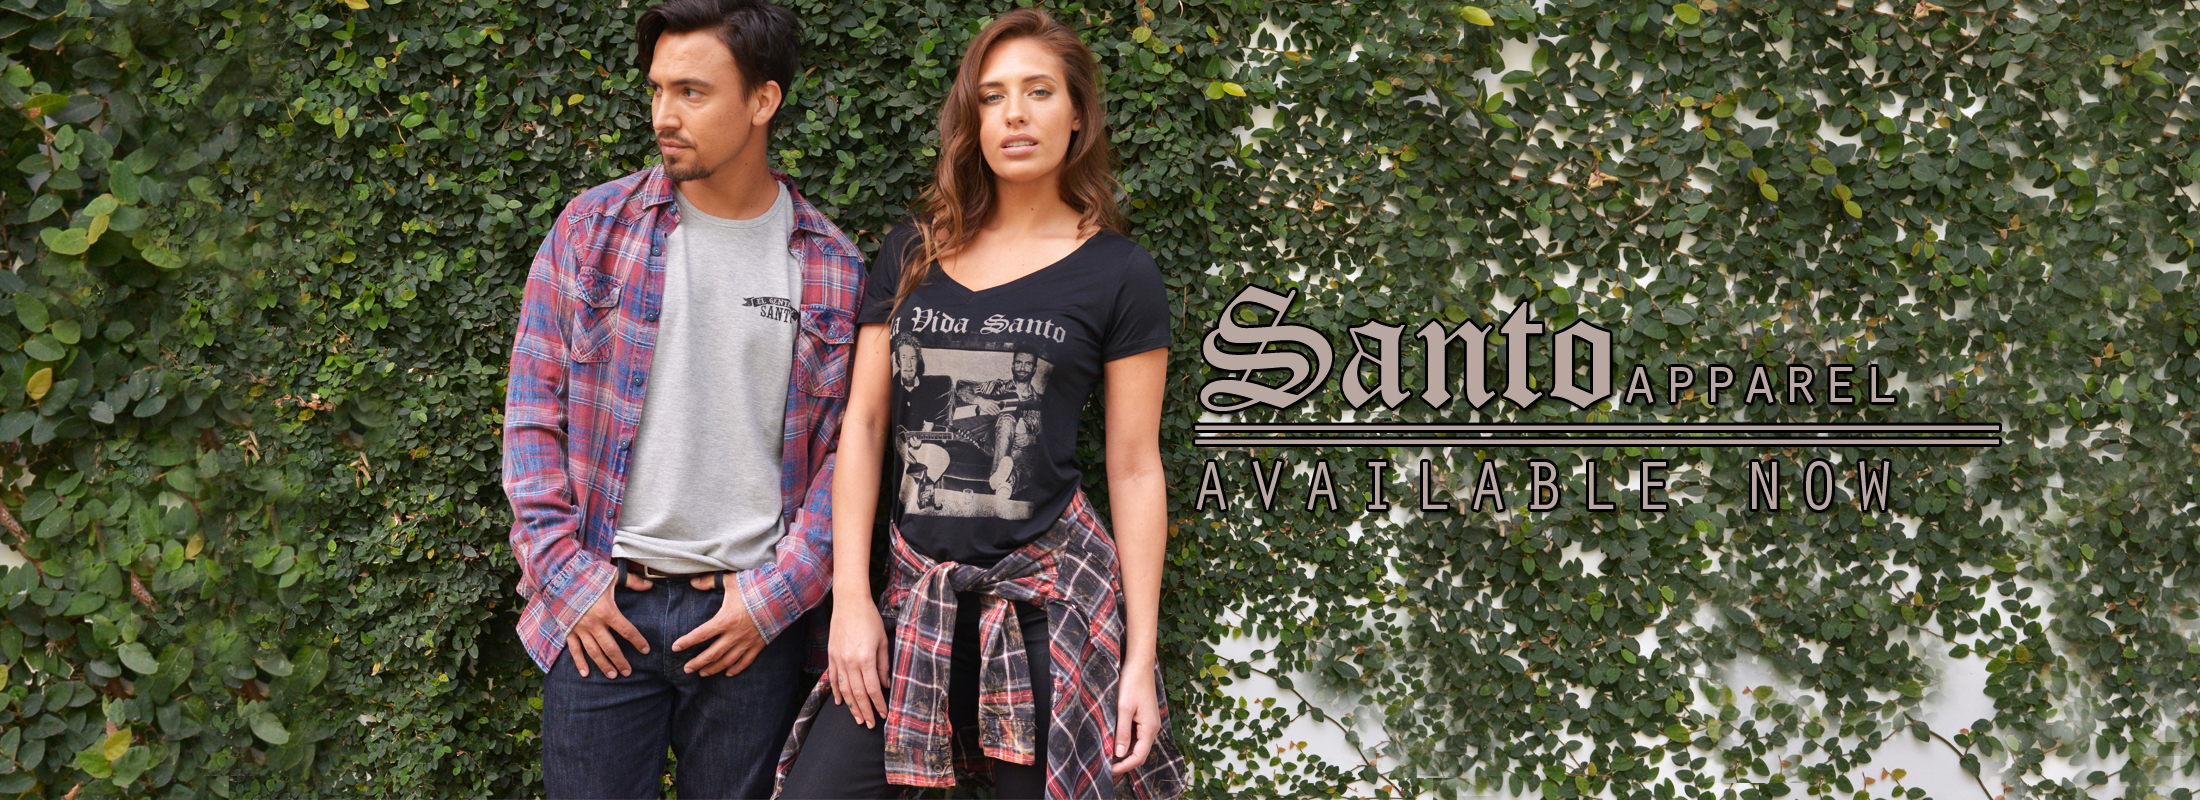 SANTO APPAREL AVAILABLE NOW